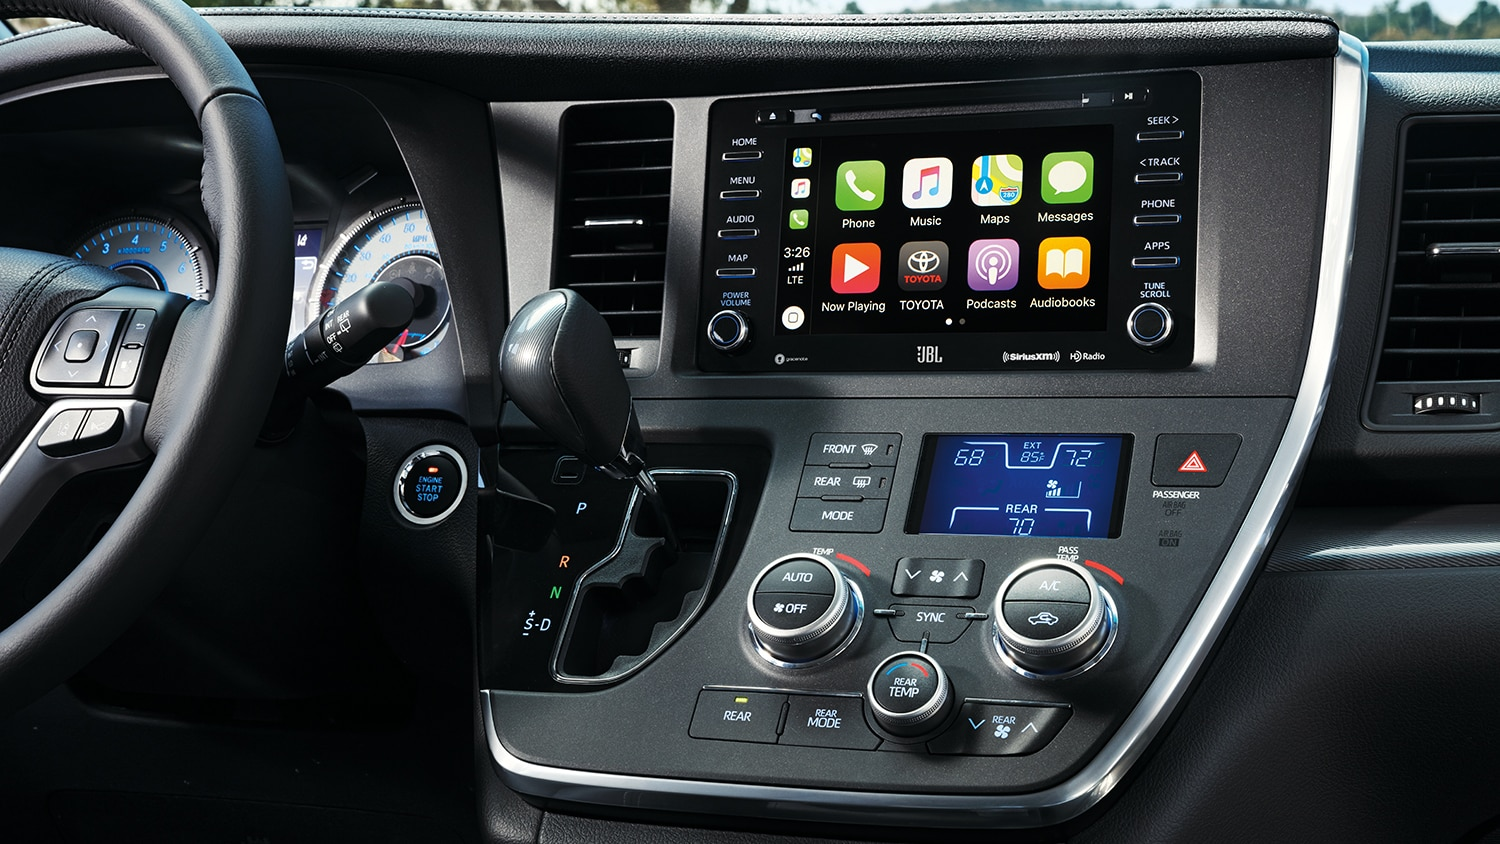 Interior view of the touchscreen infotainment system of the 2019 Sienna